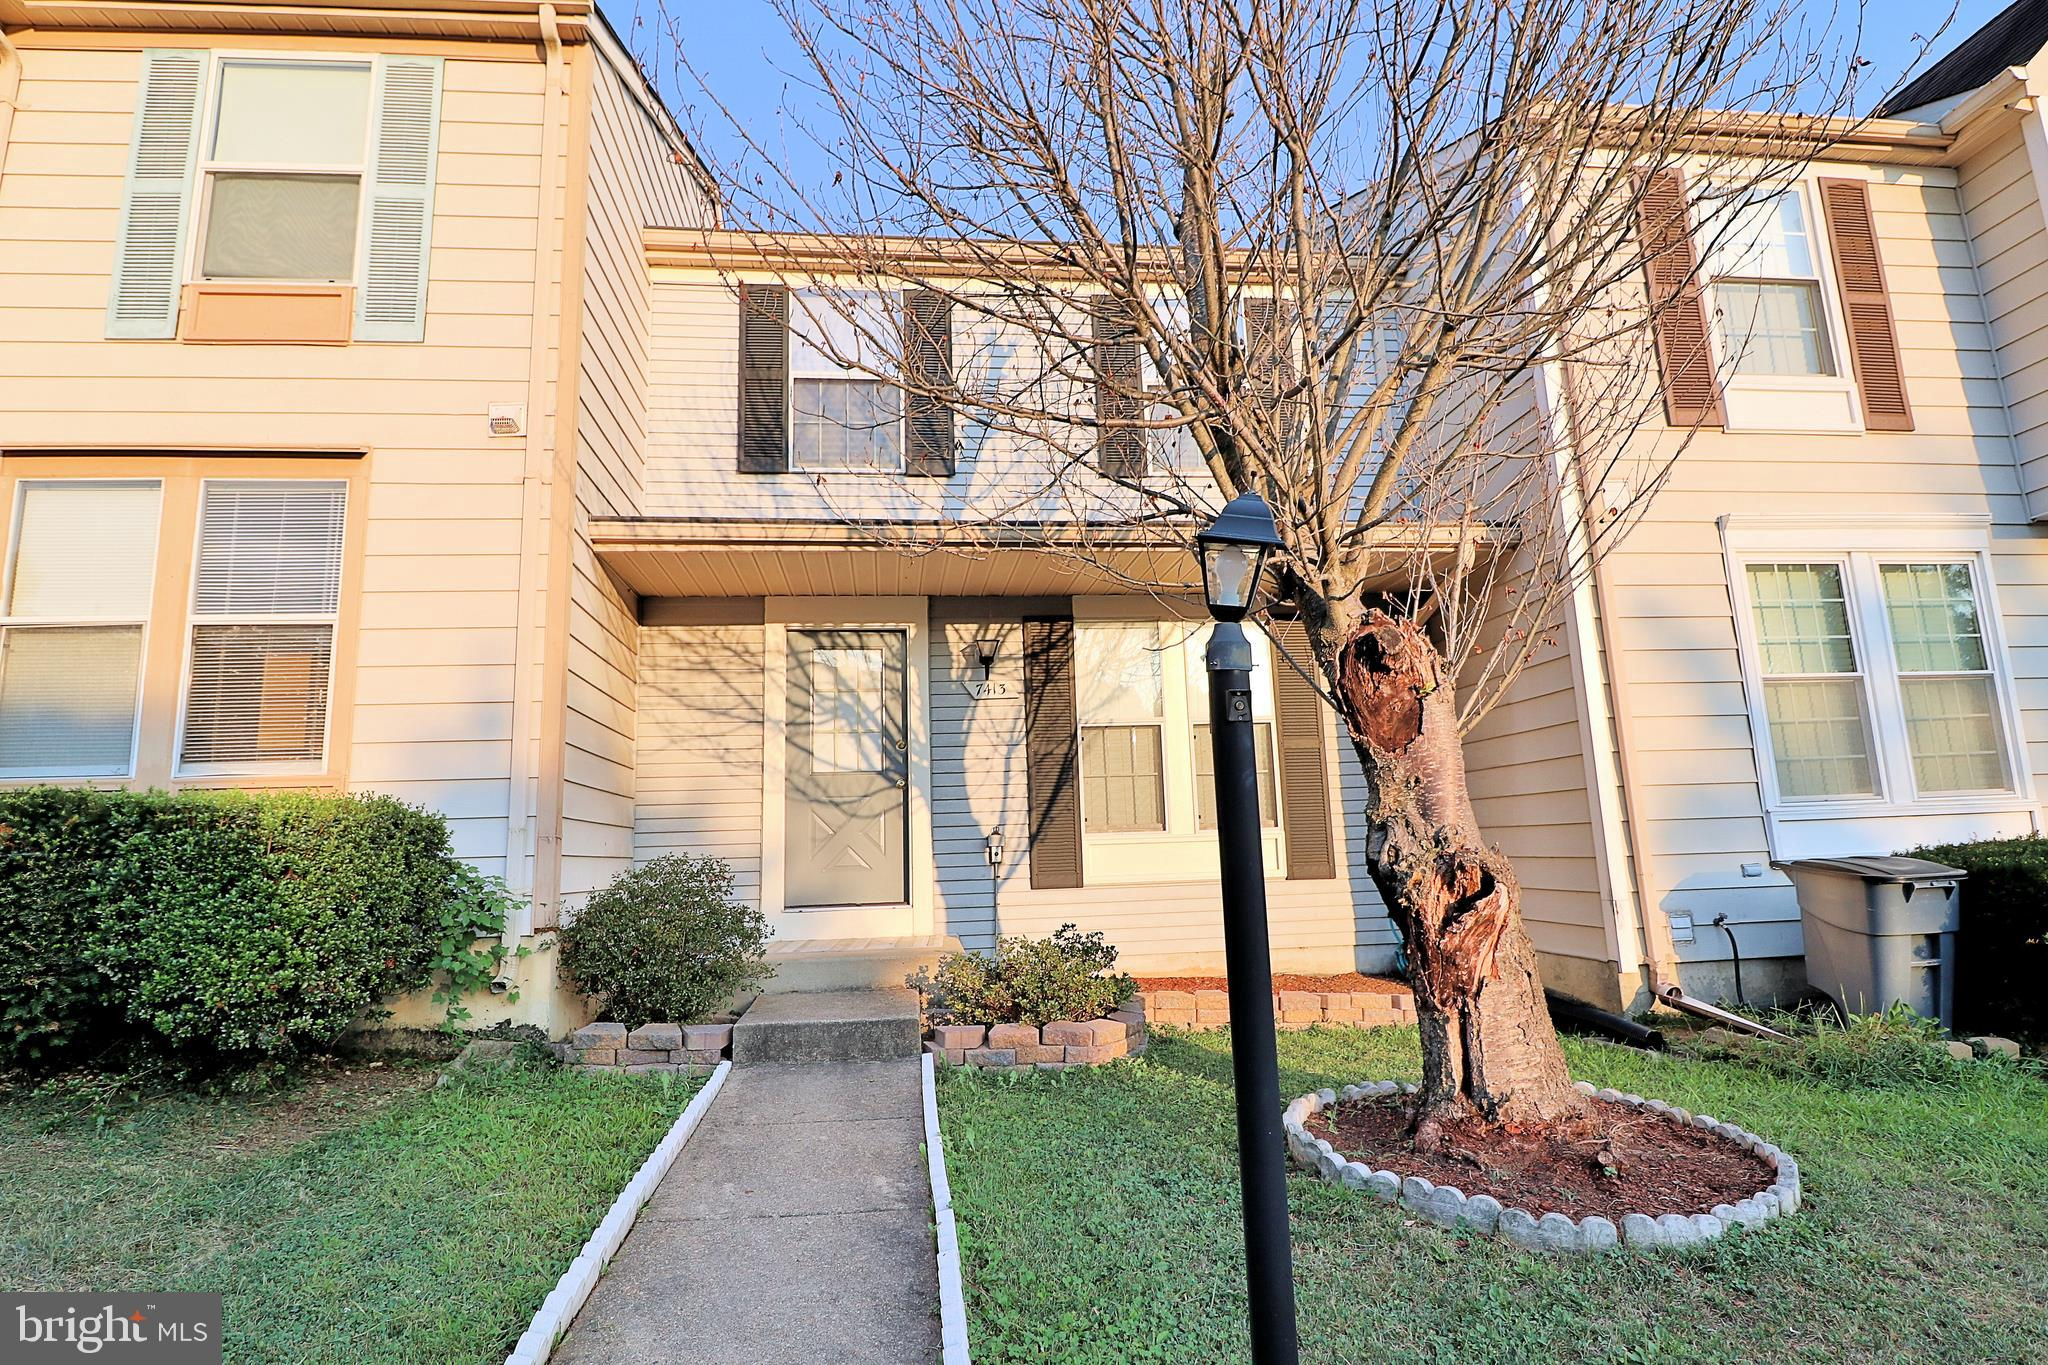 Great Location and beautiful townhouse, features 3 bedrooms upstairs and great room in the finished walkout basement. House totally renovated on 2013 and roof changed 1 year ago, Granite counter top, SS appliances, Hardwood floor. Easy access to get to I-95, I-495 and I-395 and rout 1, you will have easy access to many commuting routes and options to include the Lorton Virginia Railway Express (VRE) station, bus stops, slug lines and commuter lots are all nearby. Easy access to Ft. Belvoir, Wegmans, Shoppers Food Wharehouse, Giant, Food Lion, libraries, gyms, restaurants parks, and abundant trails/paths.